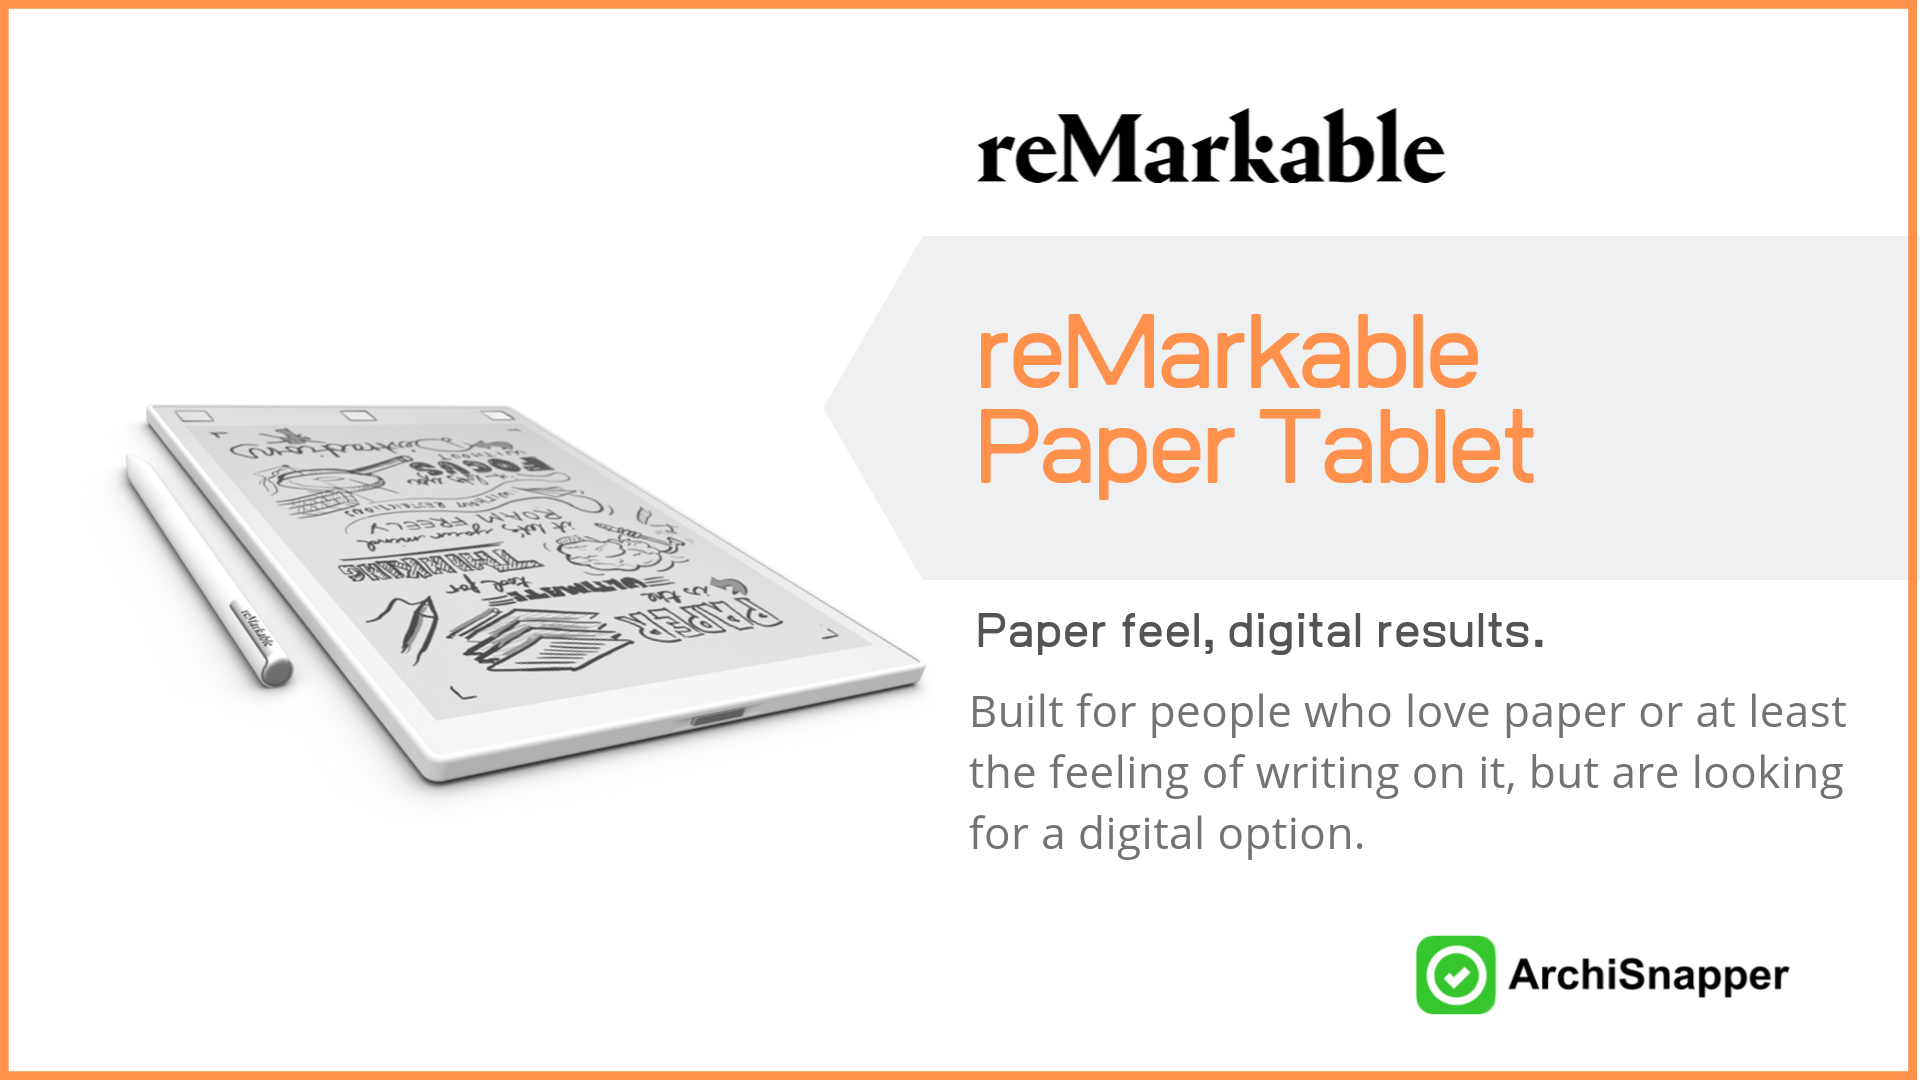 reMarkable paper tablet | List of the 15 must-have tech tools and accessories ideal for architects presented by Archisnapper